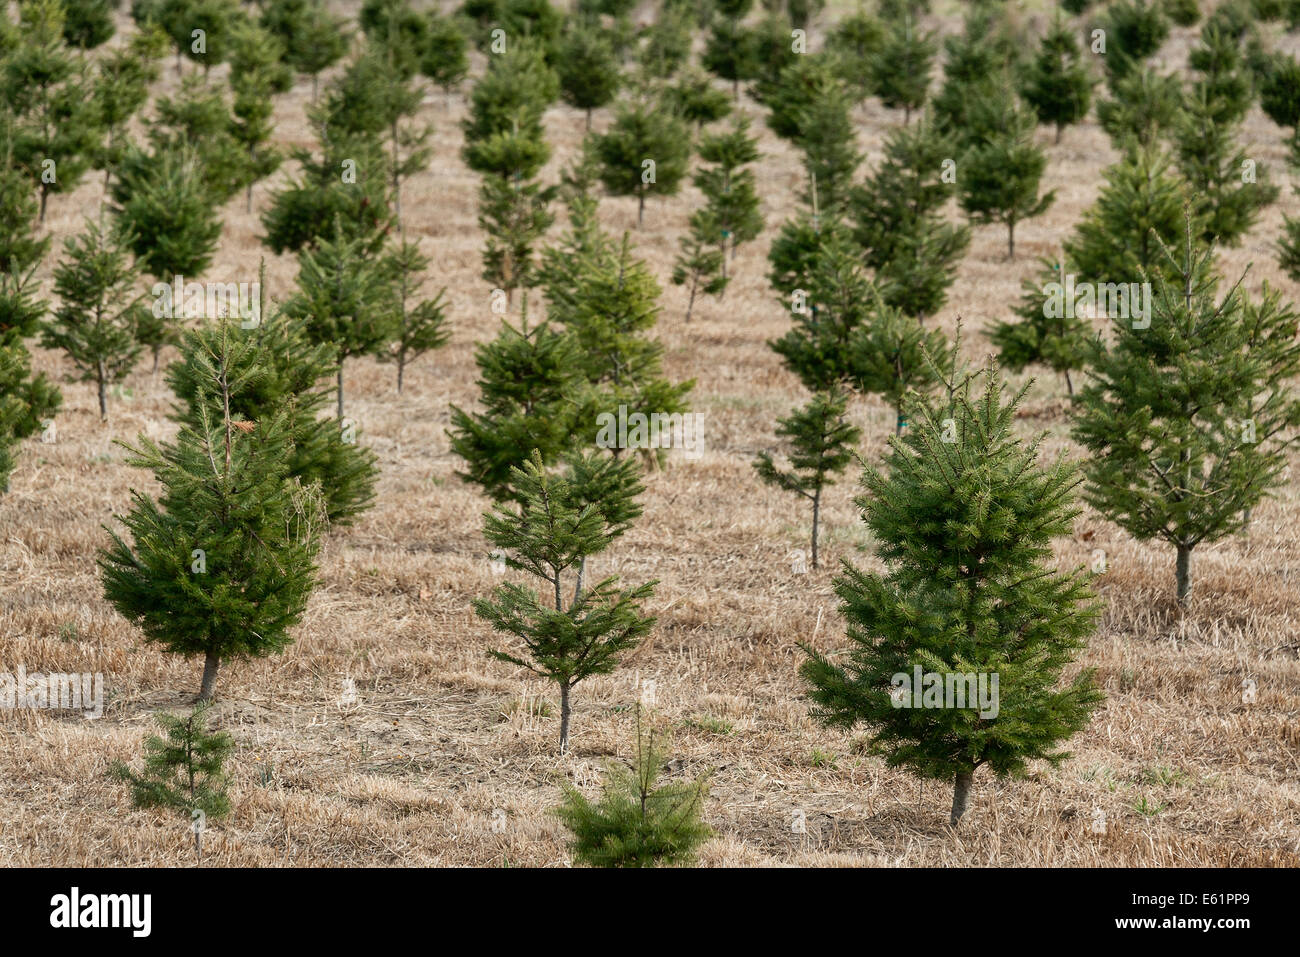 Live Christmas Tree Farms